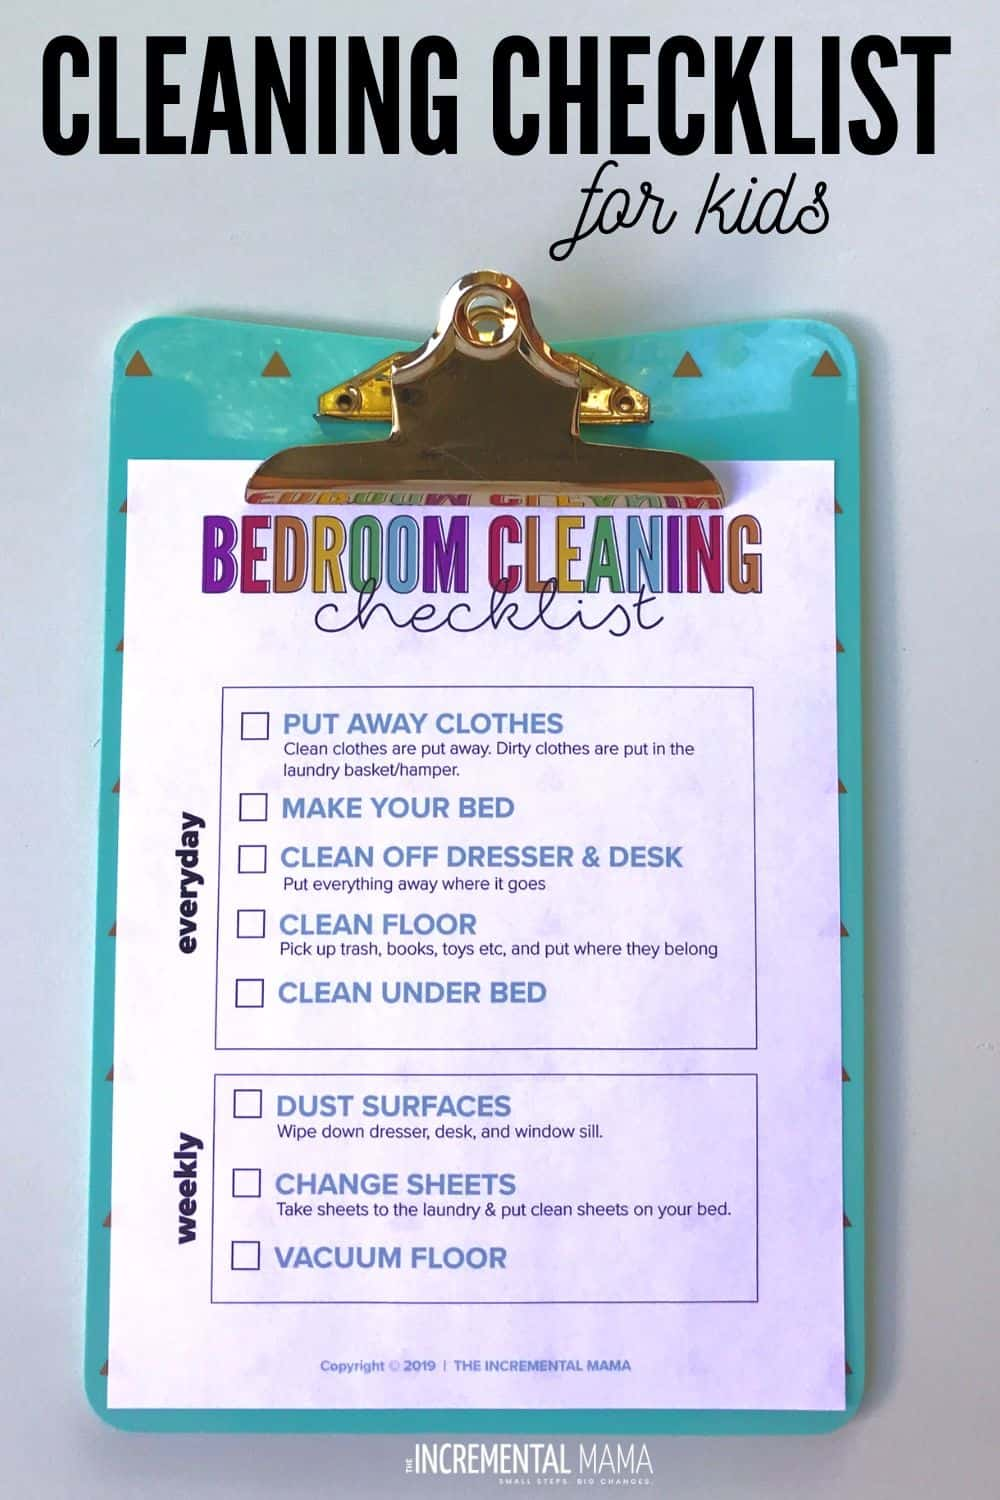 Bedroom cleaning checklist for kids